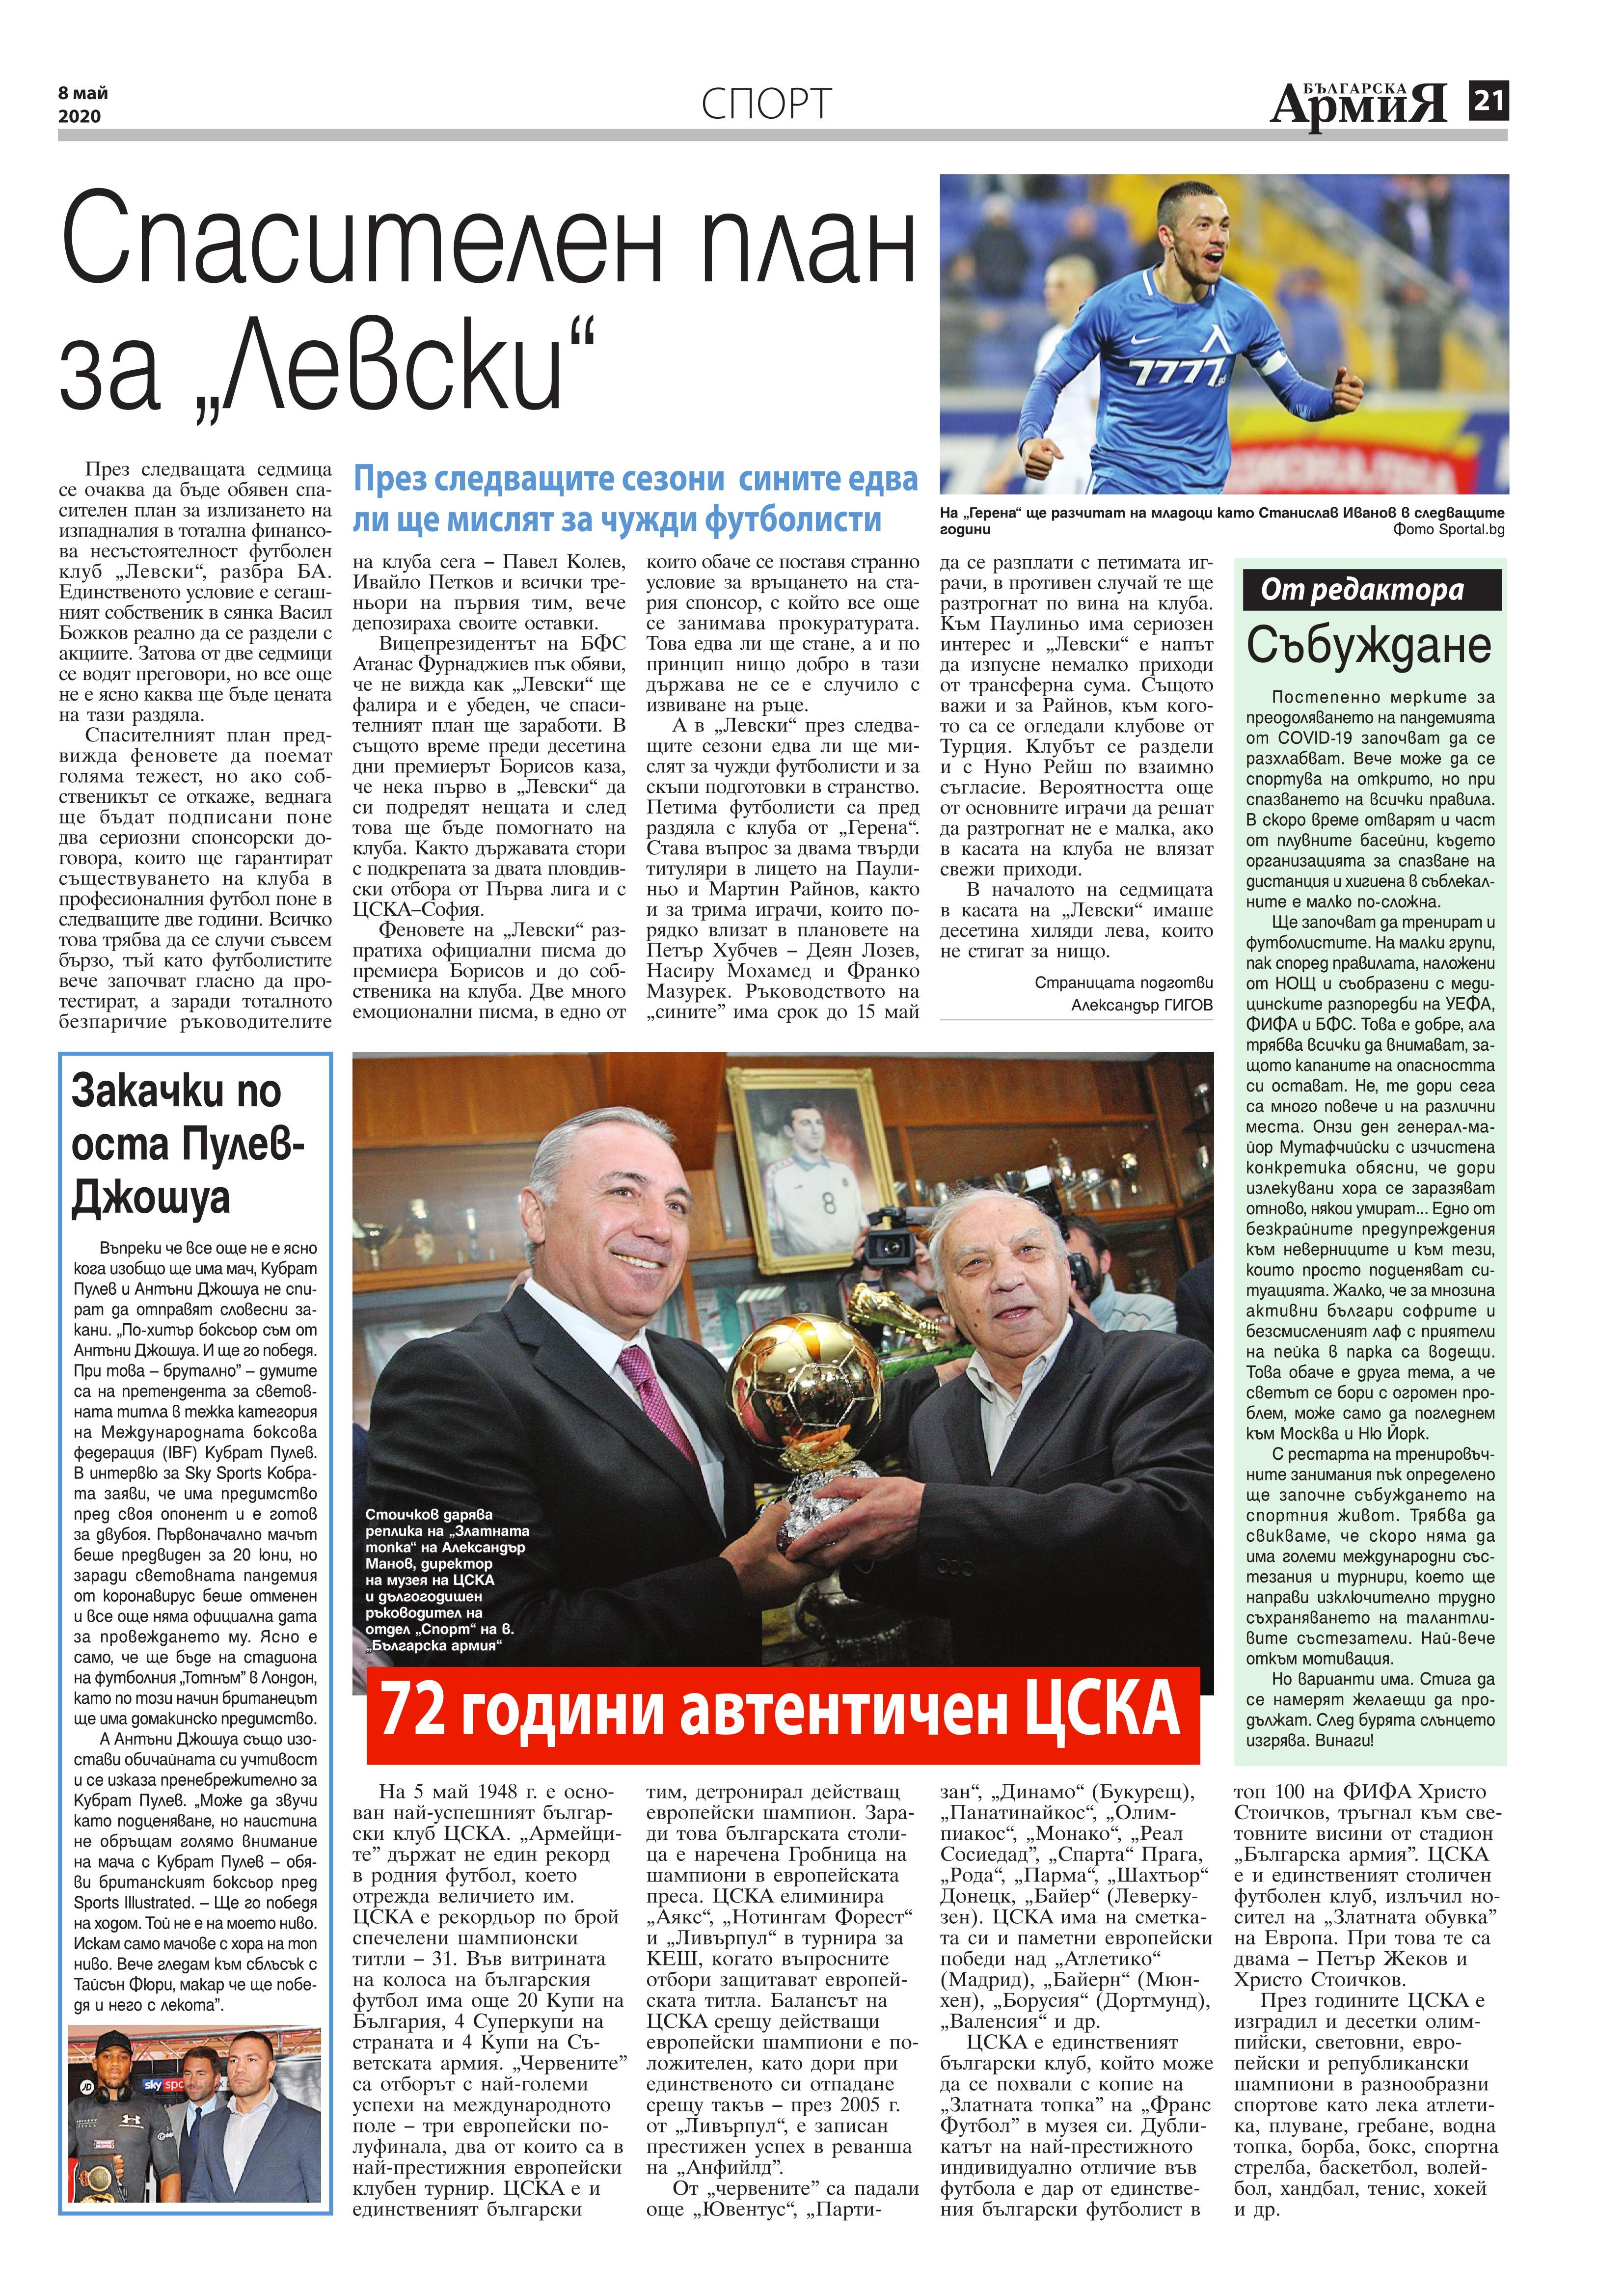 https://armymedia.bg/wp-content/uploads/2015/06/21.page1_-138.jpg